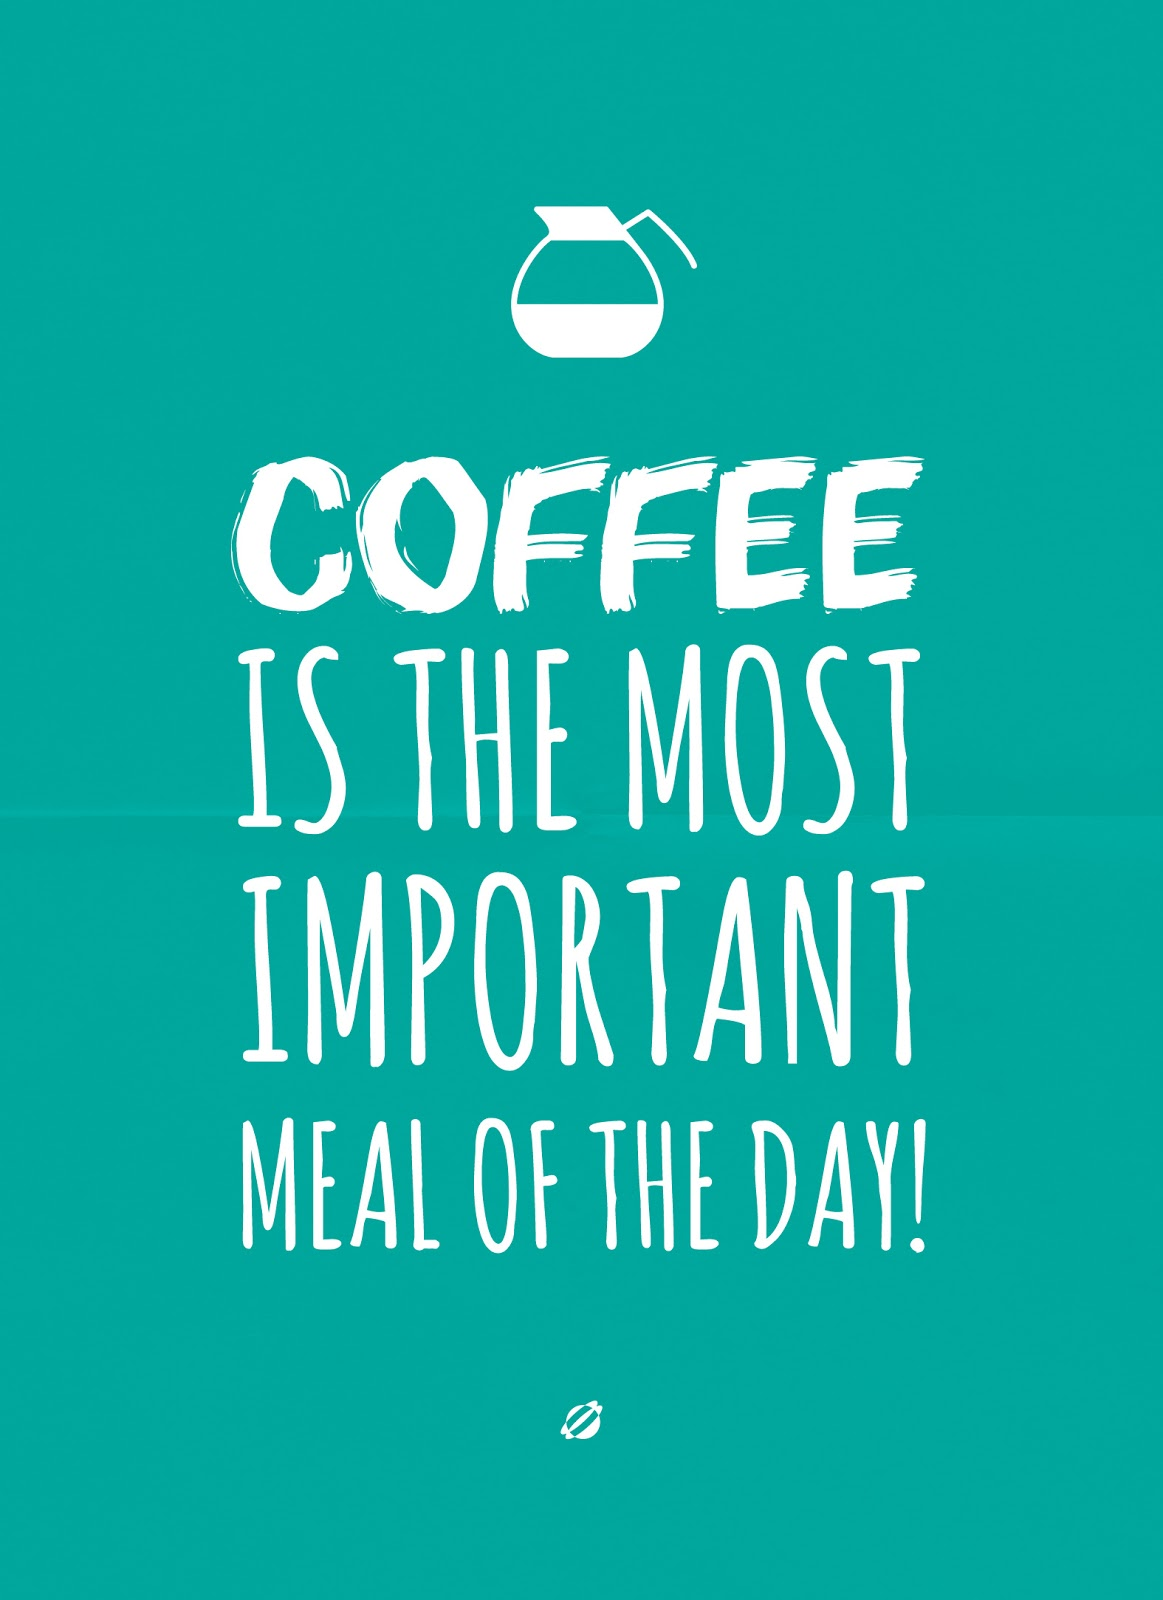 LostBumblebee: Coffee Most Important Meal Of The Day. Period